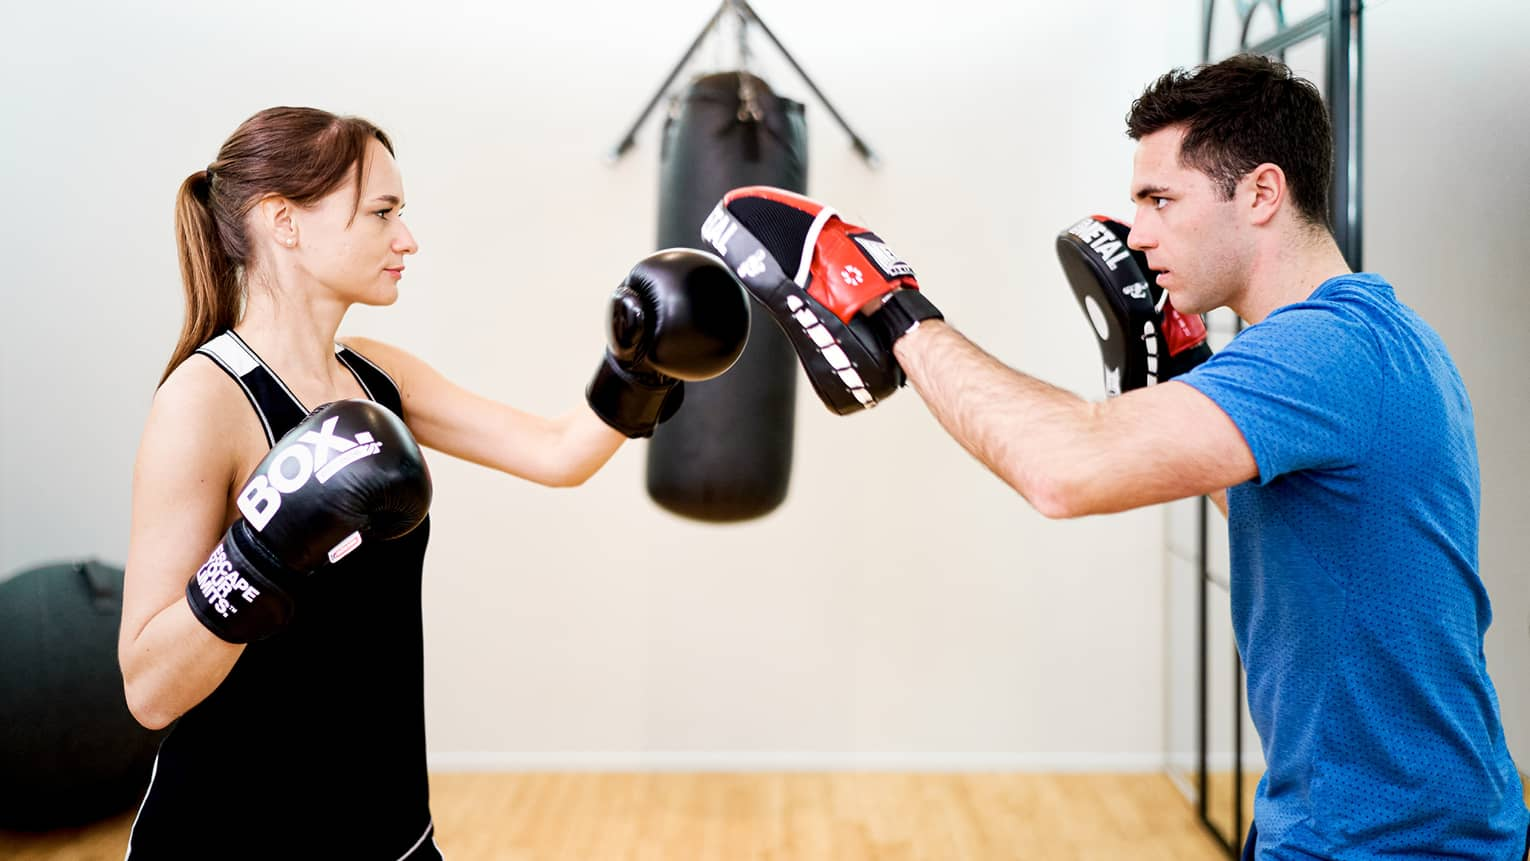 Gloved woman in black tank top sparring with man in blue shirt, heavy bag in backdrop